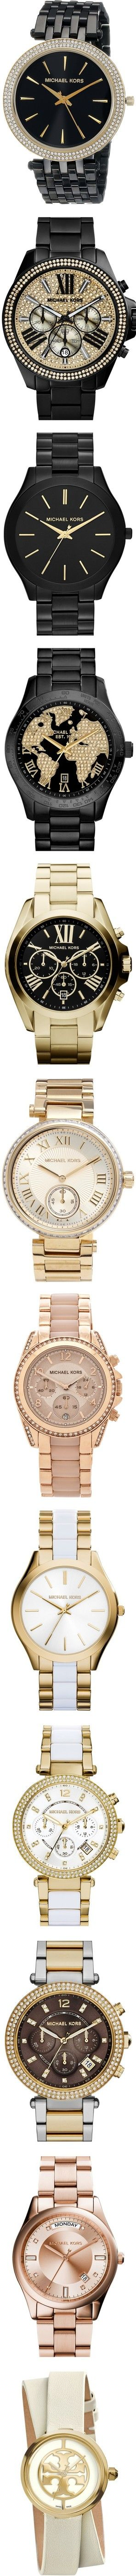 Watches by darlingchick on Polyvore featuring polyvore, fashion, jewelry, watches, michael kors watches, michael kors jewelry, military style watches, black dial watches, gold tone watches, accessories, bracelets, black watches, gold pave bracelet, gold jewelry, gold chronograph watches, chronograph watches, michael kors, black gold jewelry, gold wristwatches, gold wrist watch, yellow gold watches, black wrist watch, black jewelry, michael michael kors, golden jewelry, gold bracelet watches…